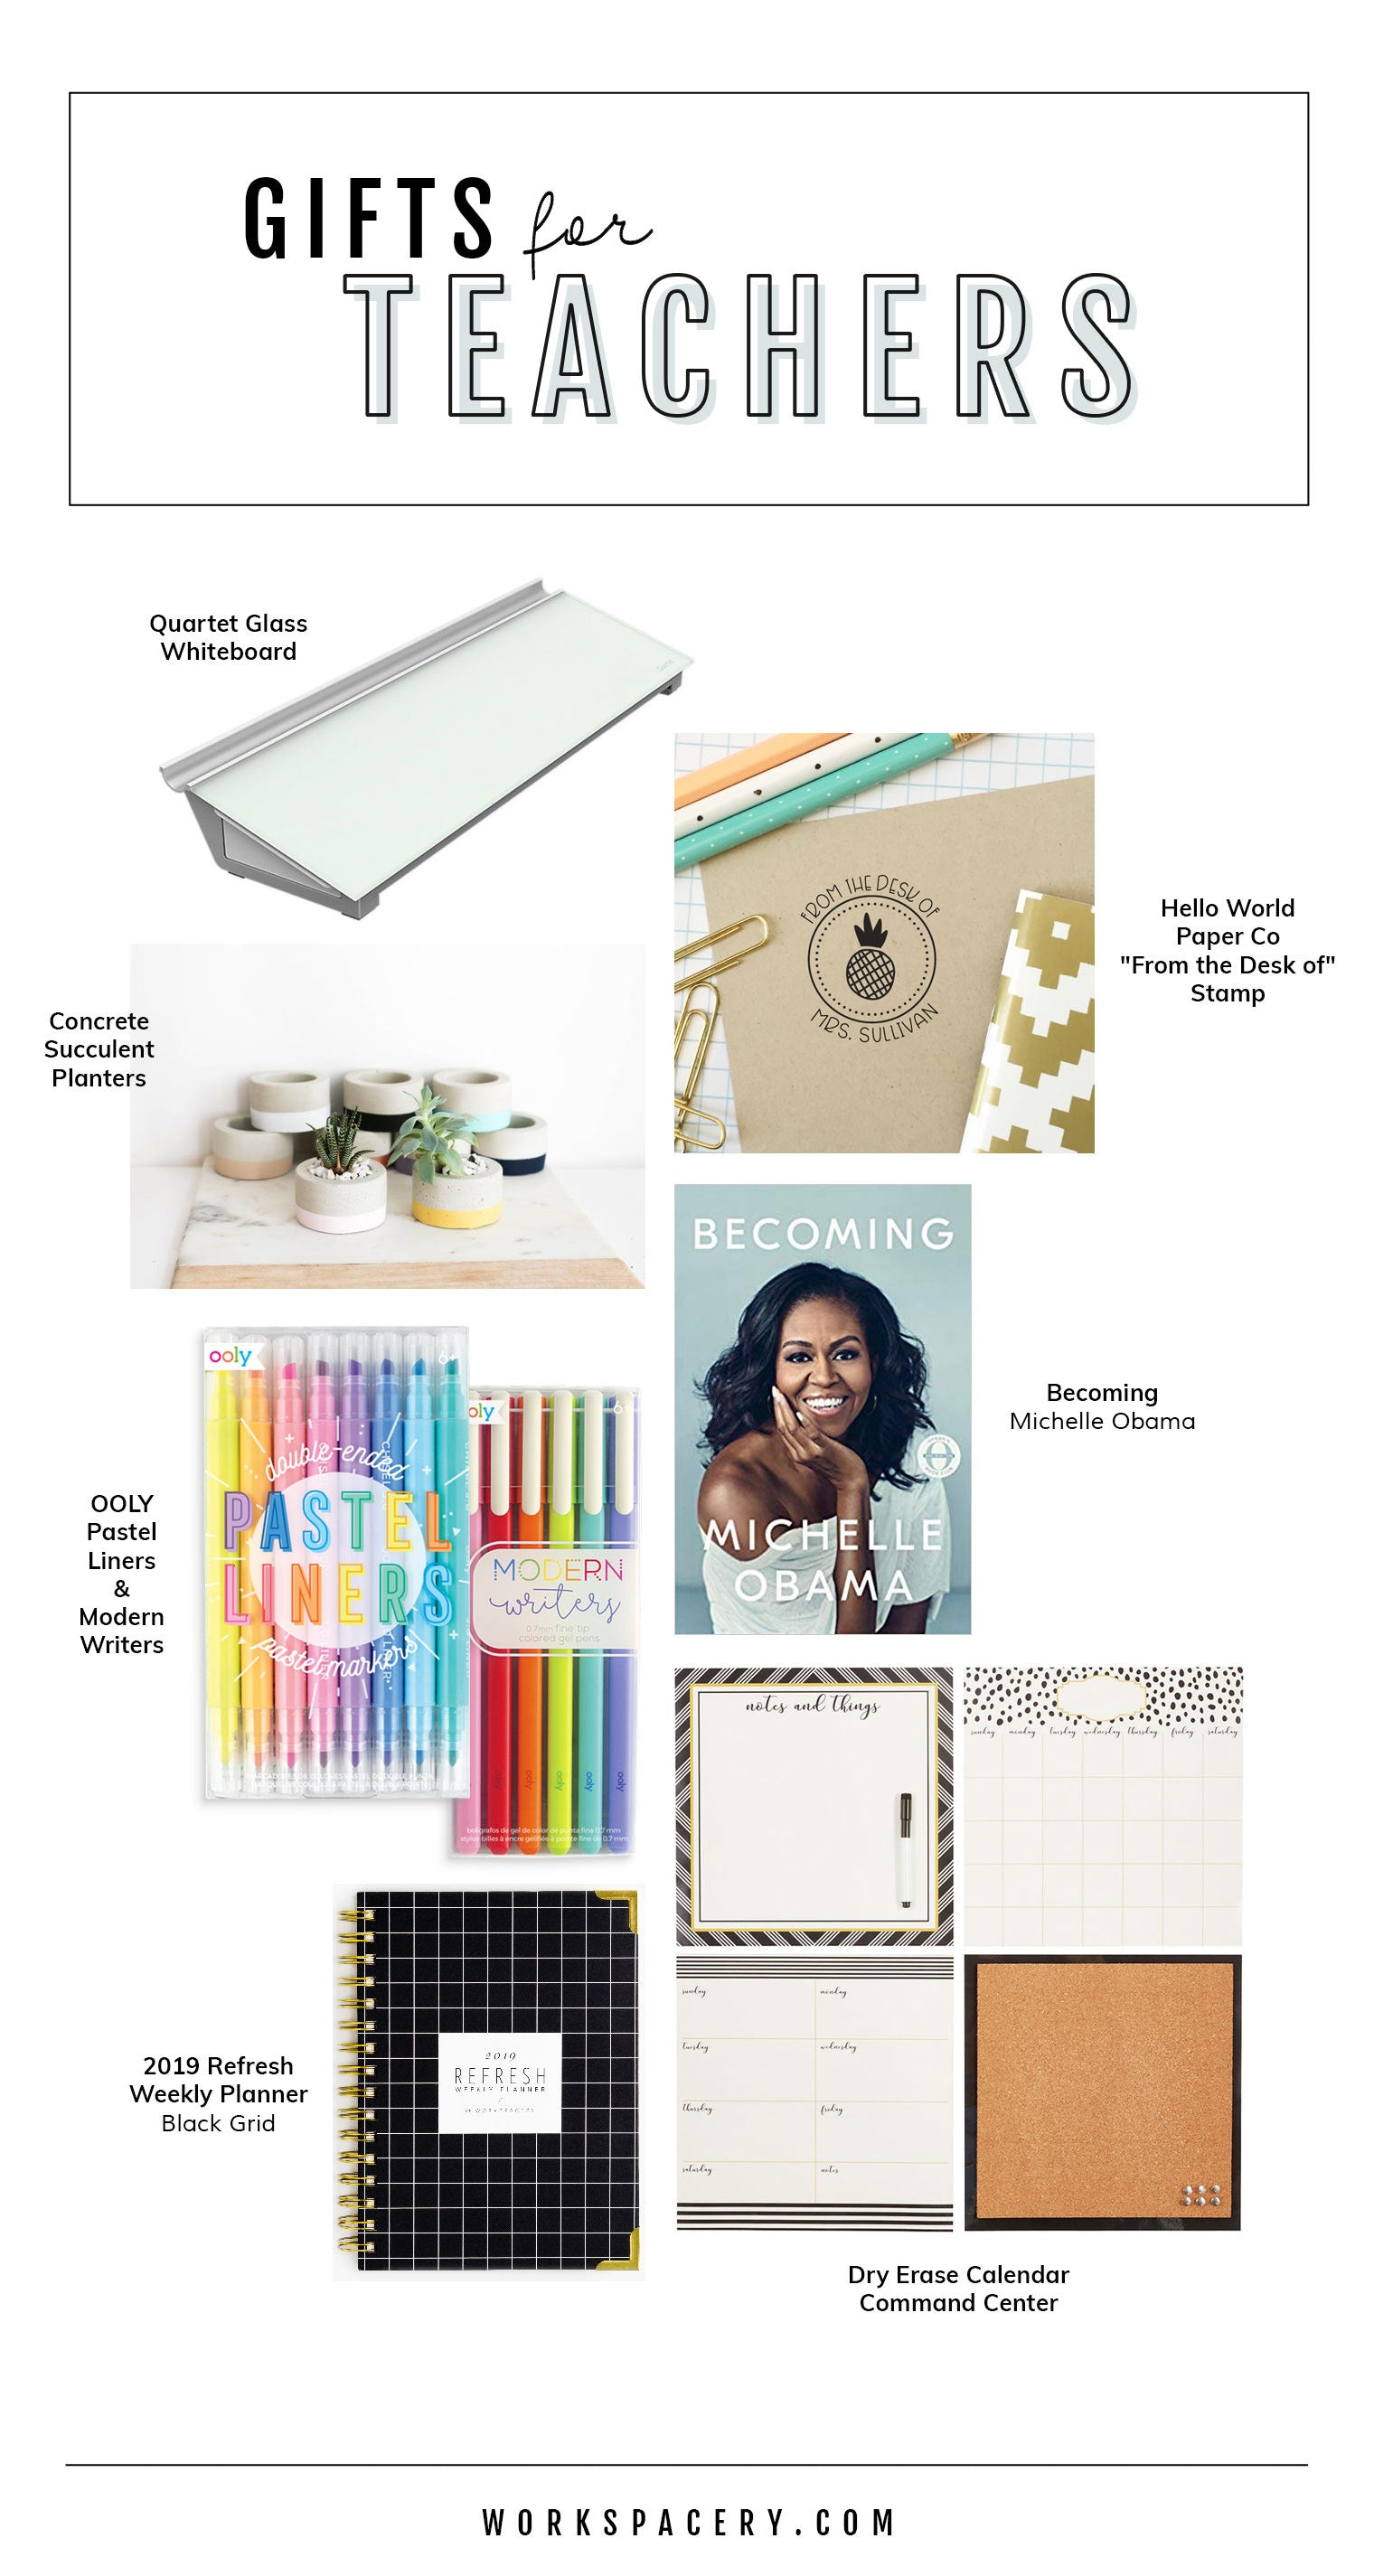 Workspacery Gift Guide for Teachers